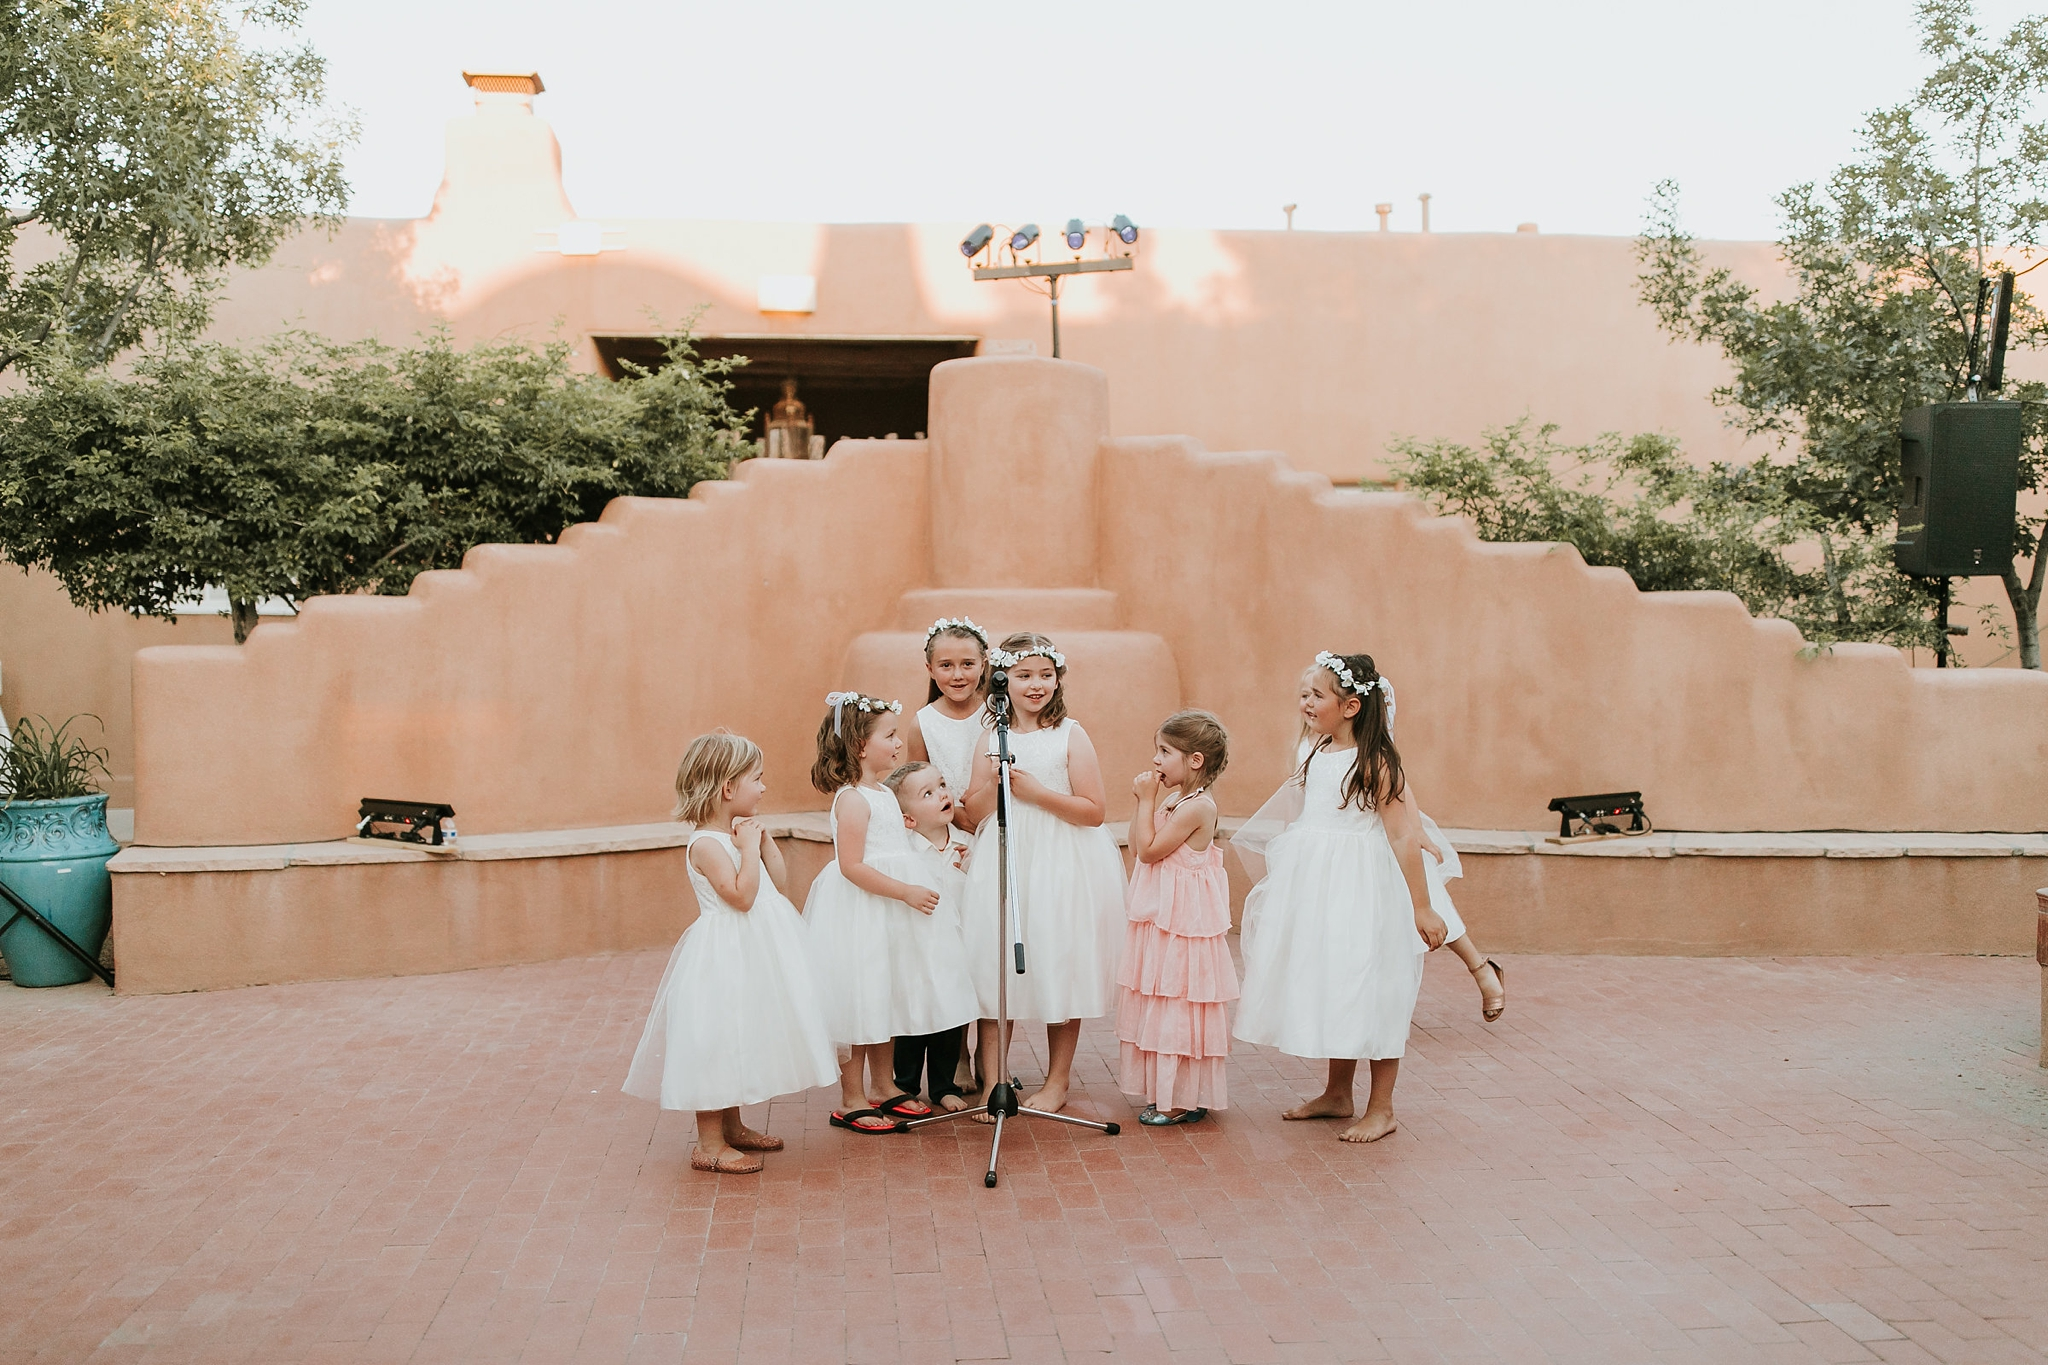 Alicia+lucia+photography+-+albuquerque+wedding+photographer+-+santa+fe+wedding+photography+-+new+mexico+wedding+photographer+-+new+mexico+wedding+-+flower+girl+-+wedding+flower+girl_0051.jpg